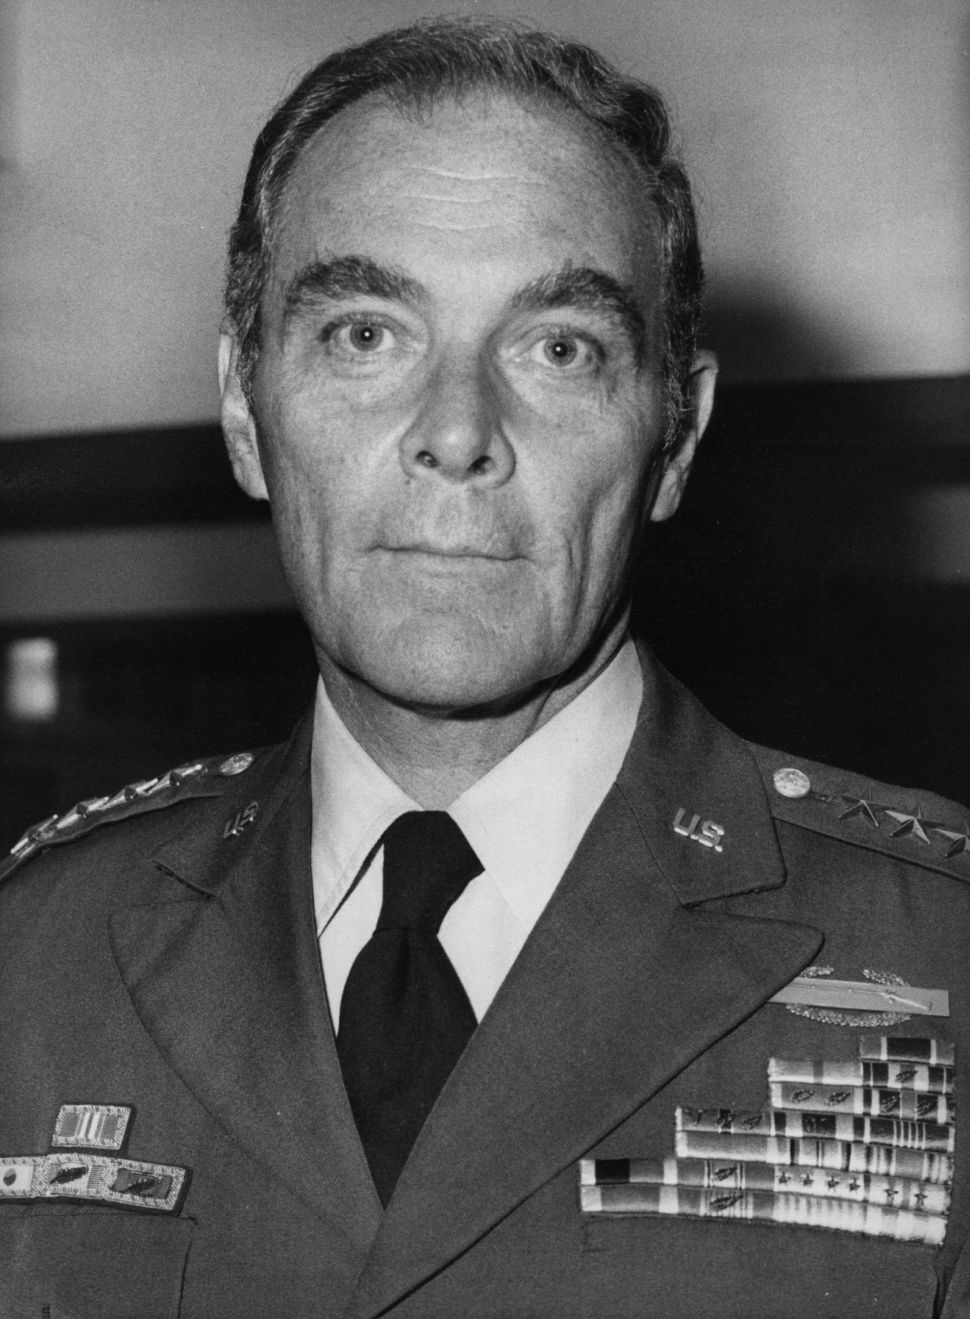 Alexander Haig, former secretary of state under President Ronald Reagan.